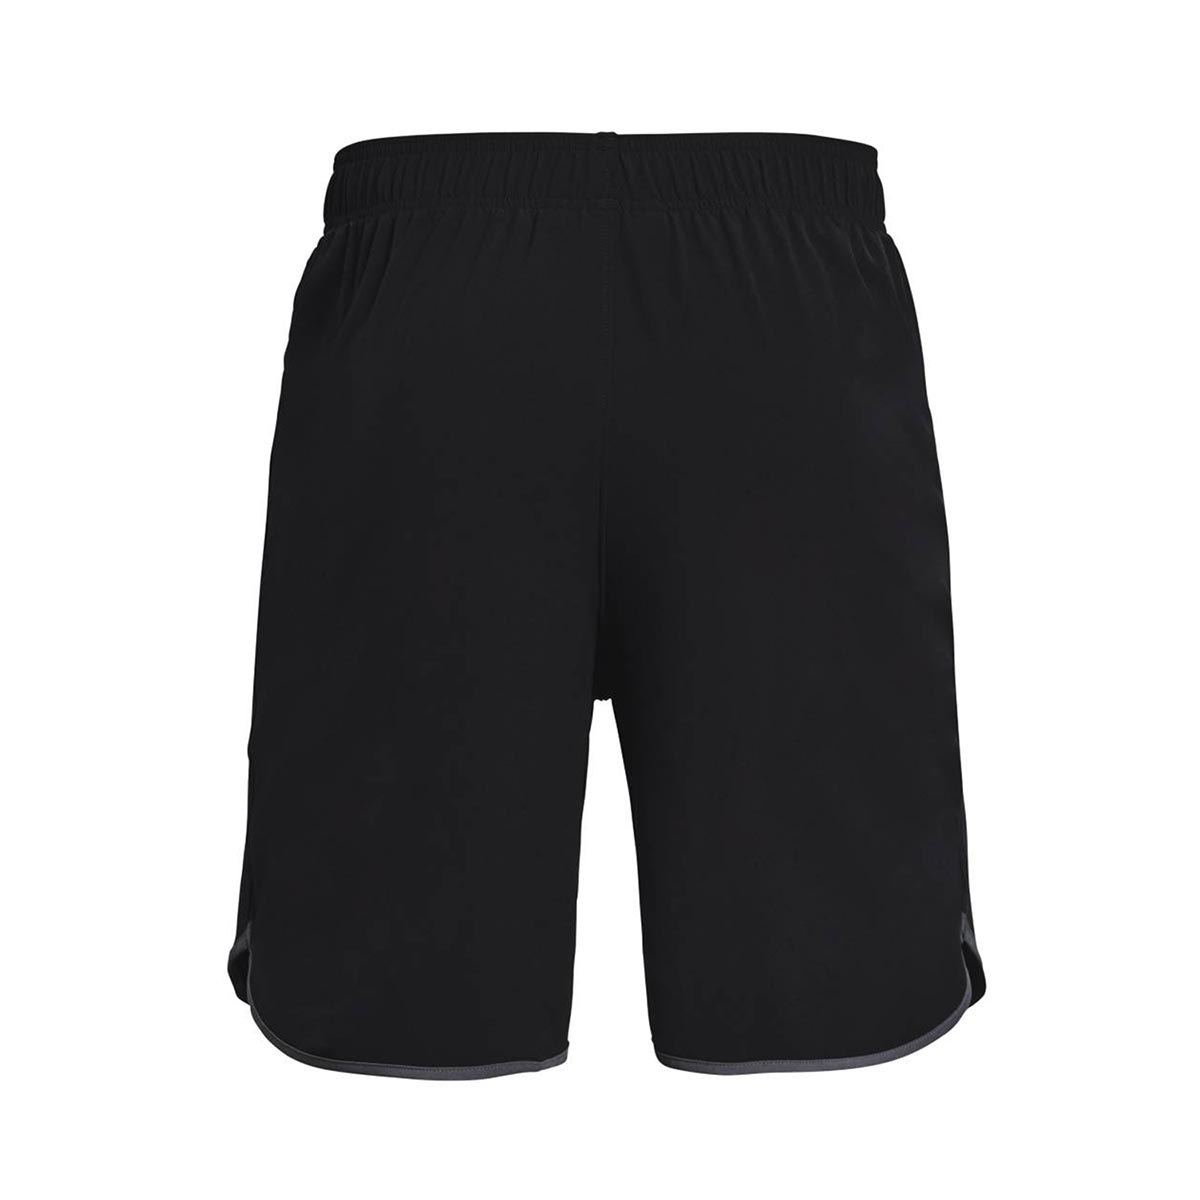 UNDER ARMOUR - HIIT WOVEN SHORTS